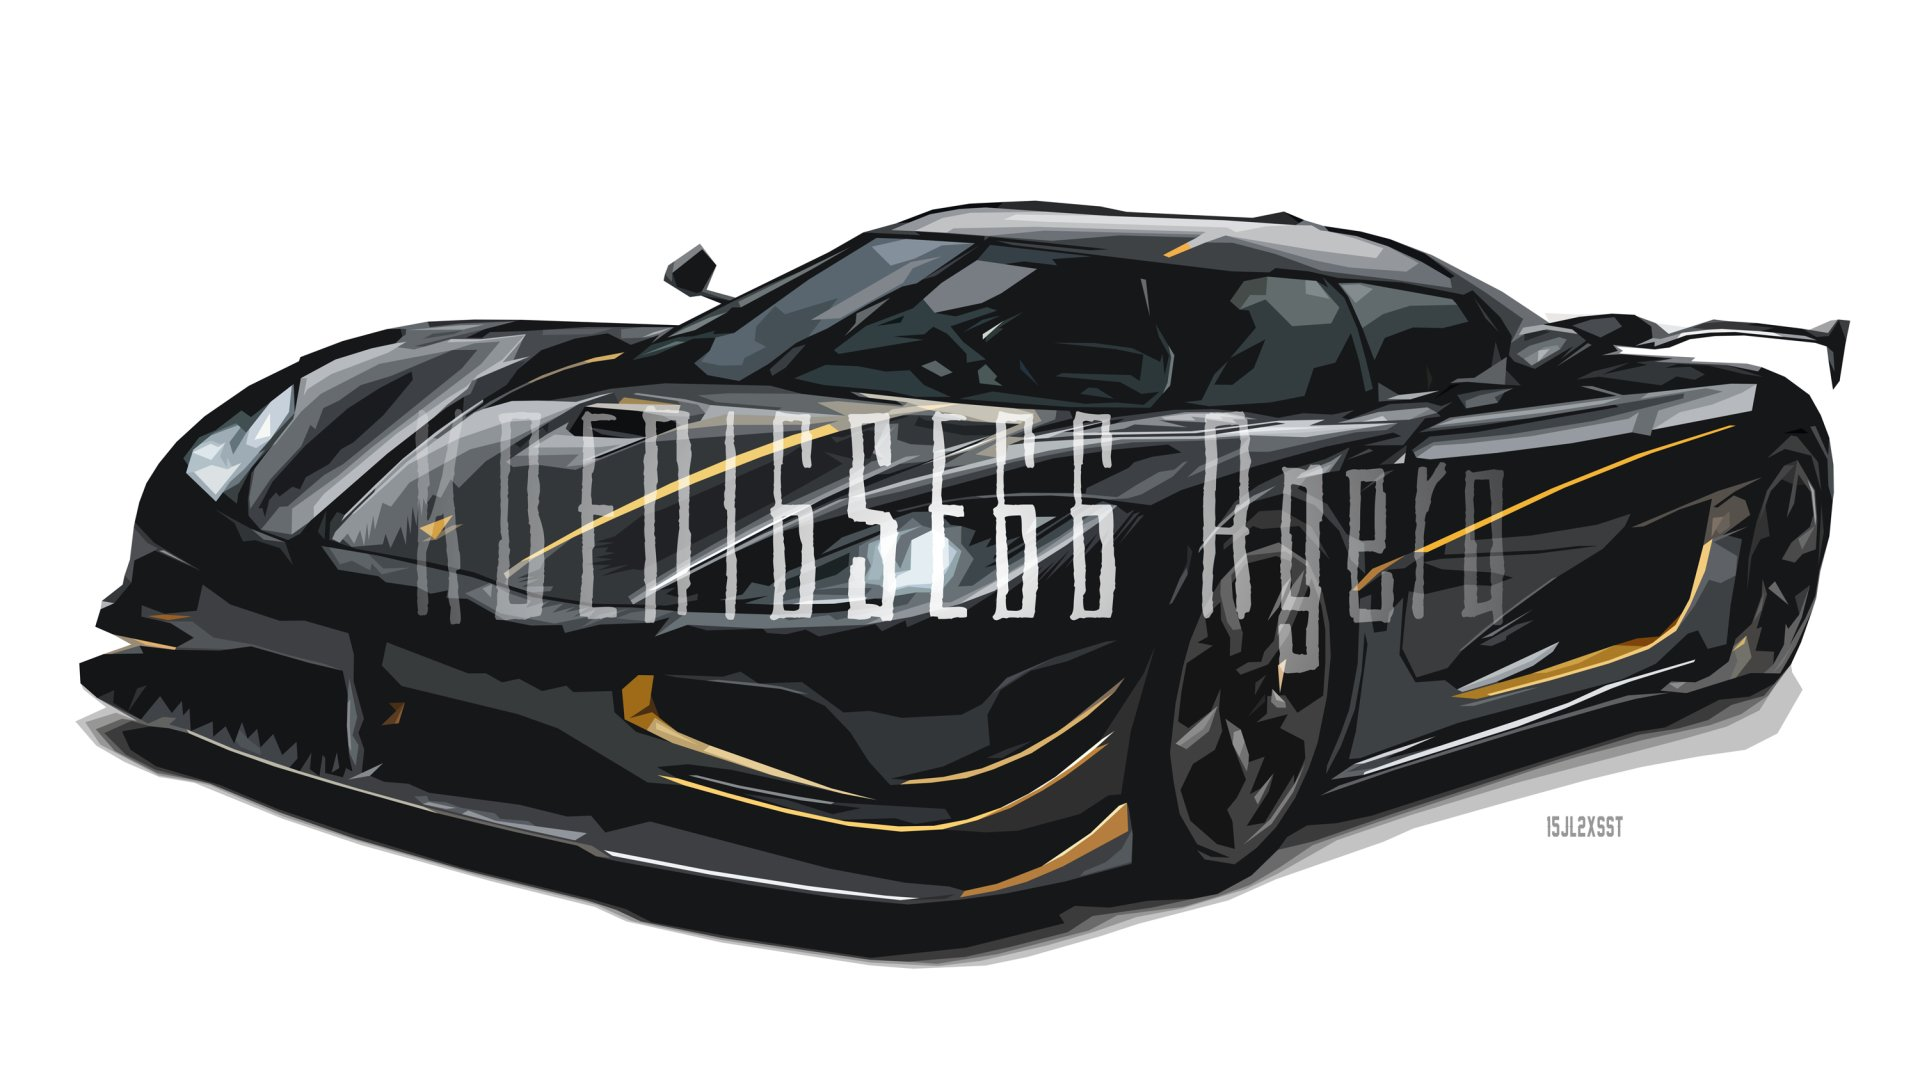 Vehicles - Koenigsegg Agera  Koenigsegg Sport Car Car Black Car Artistic Digital Art Vector Wallpaper